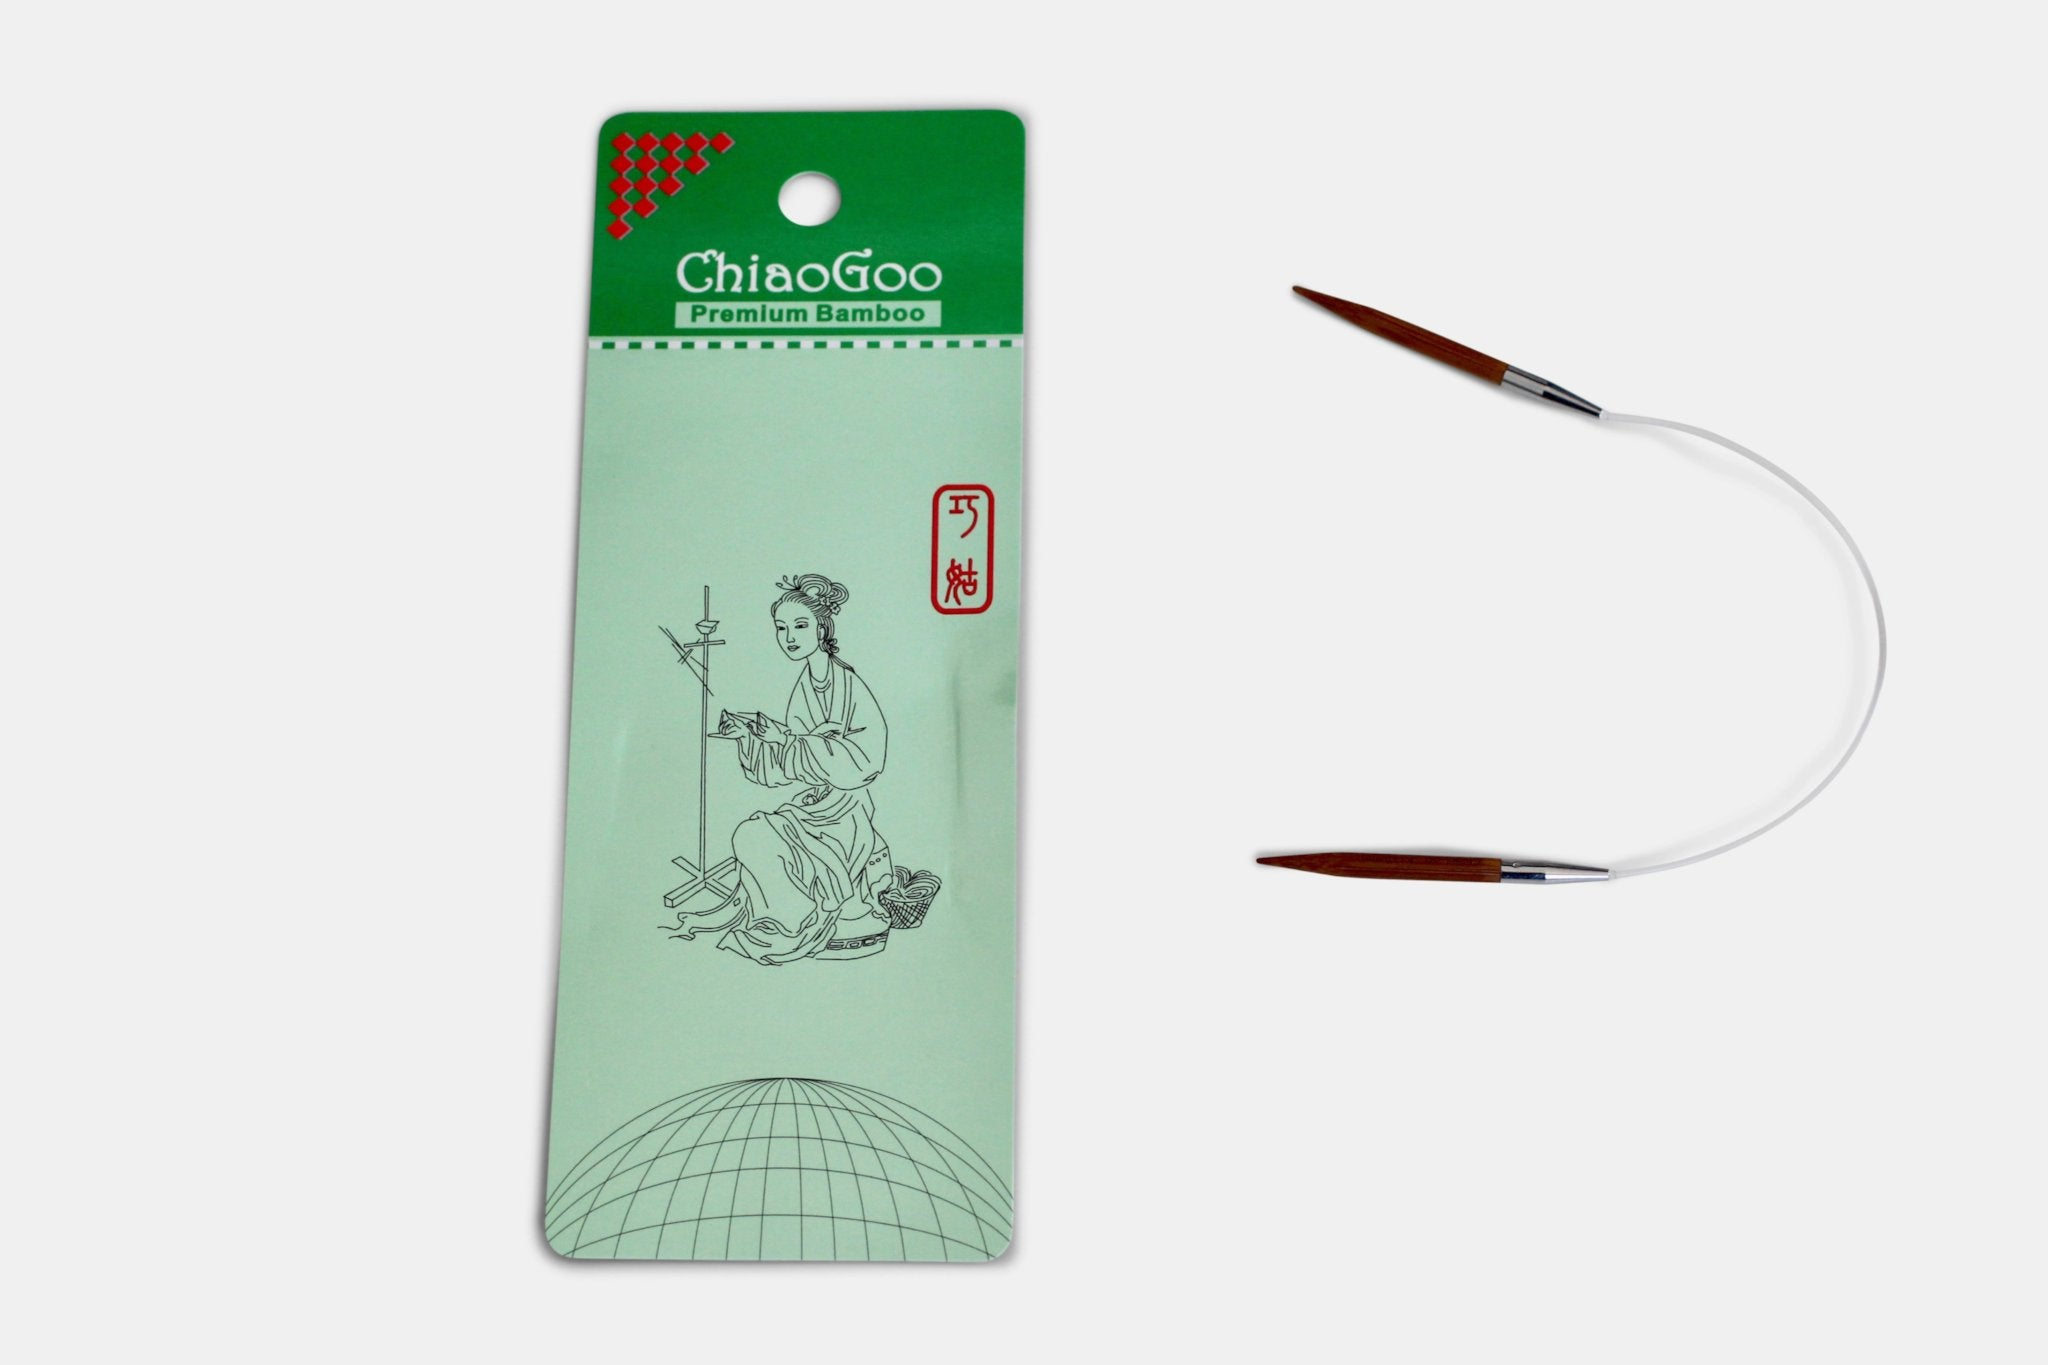 ChiaoGoo Short Cable Needles - 9 inch